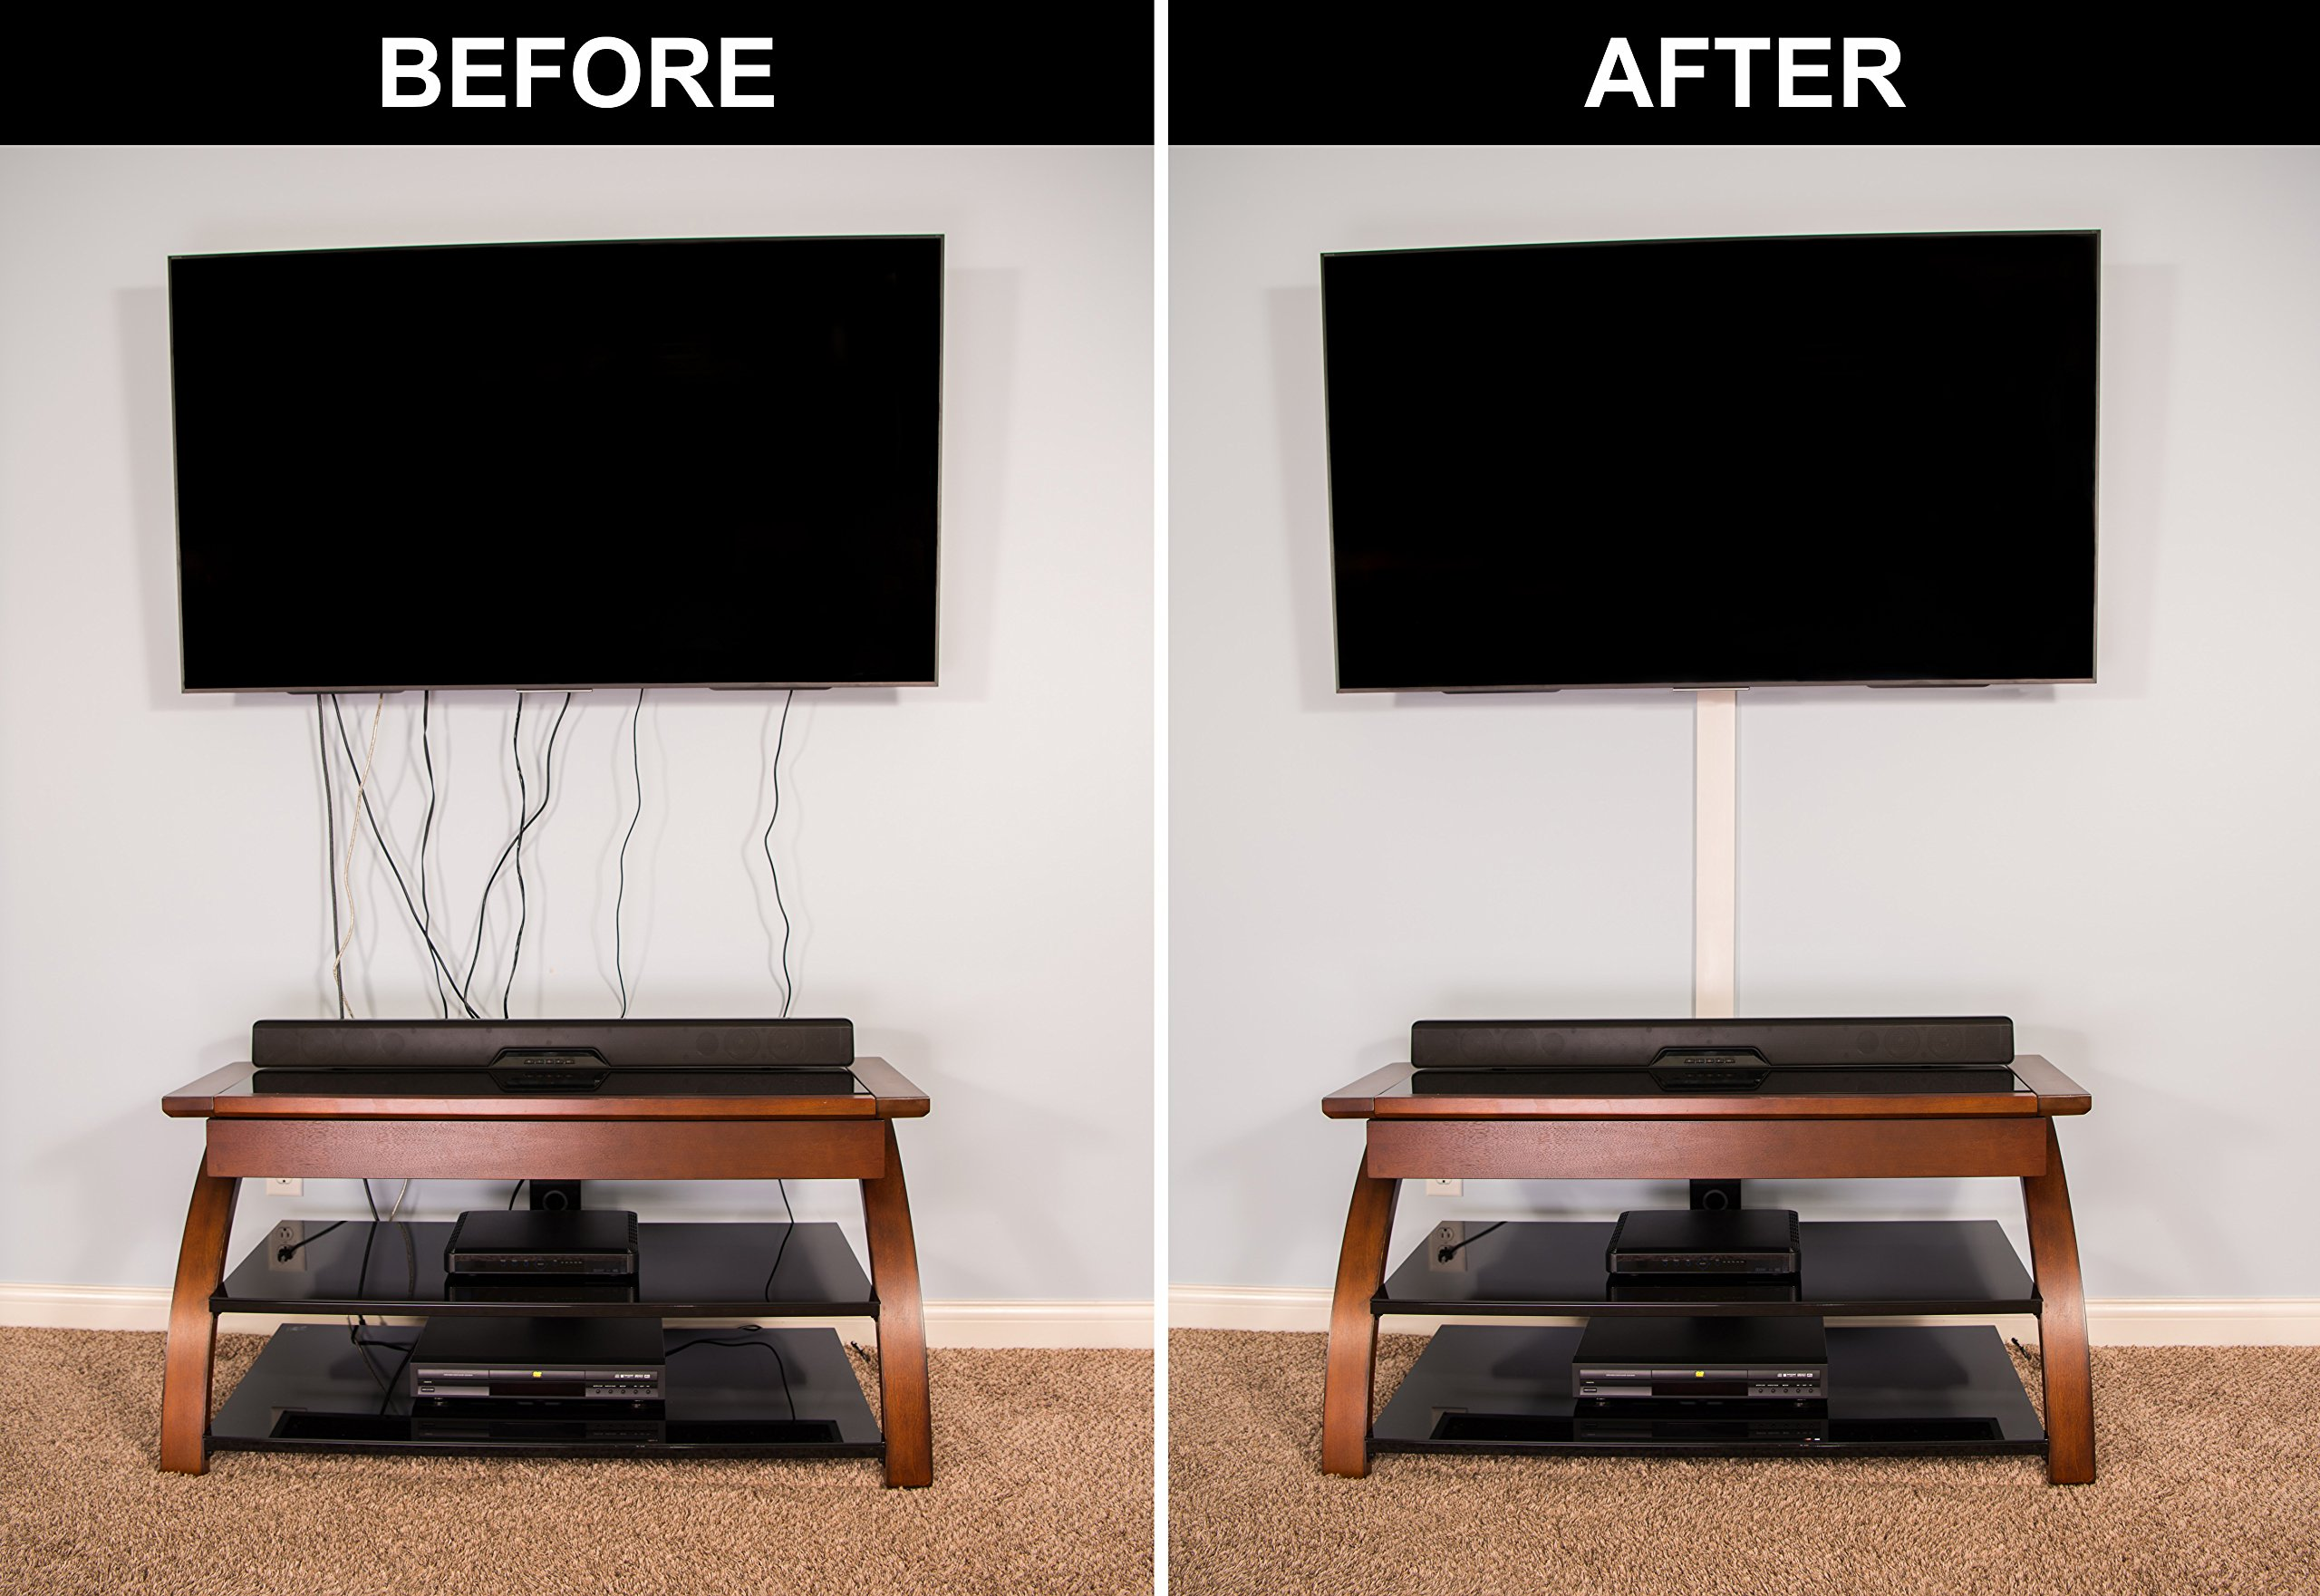 Tv Cord Covers For Wires - WIRE Center •